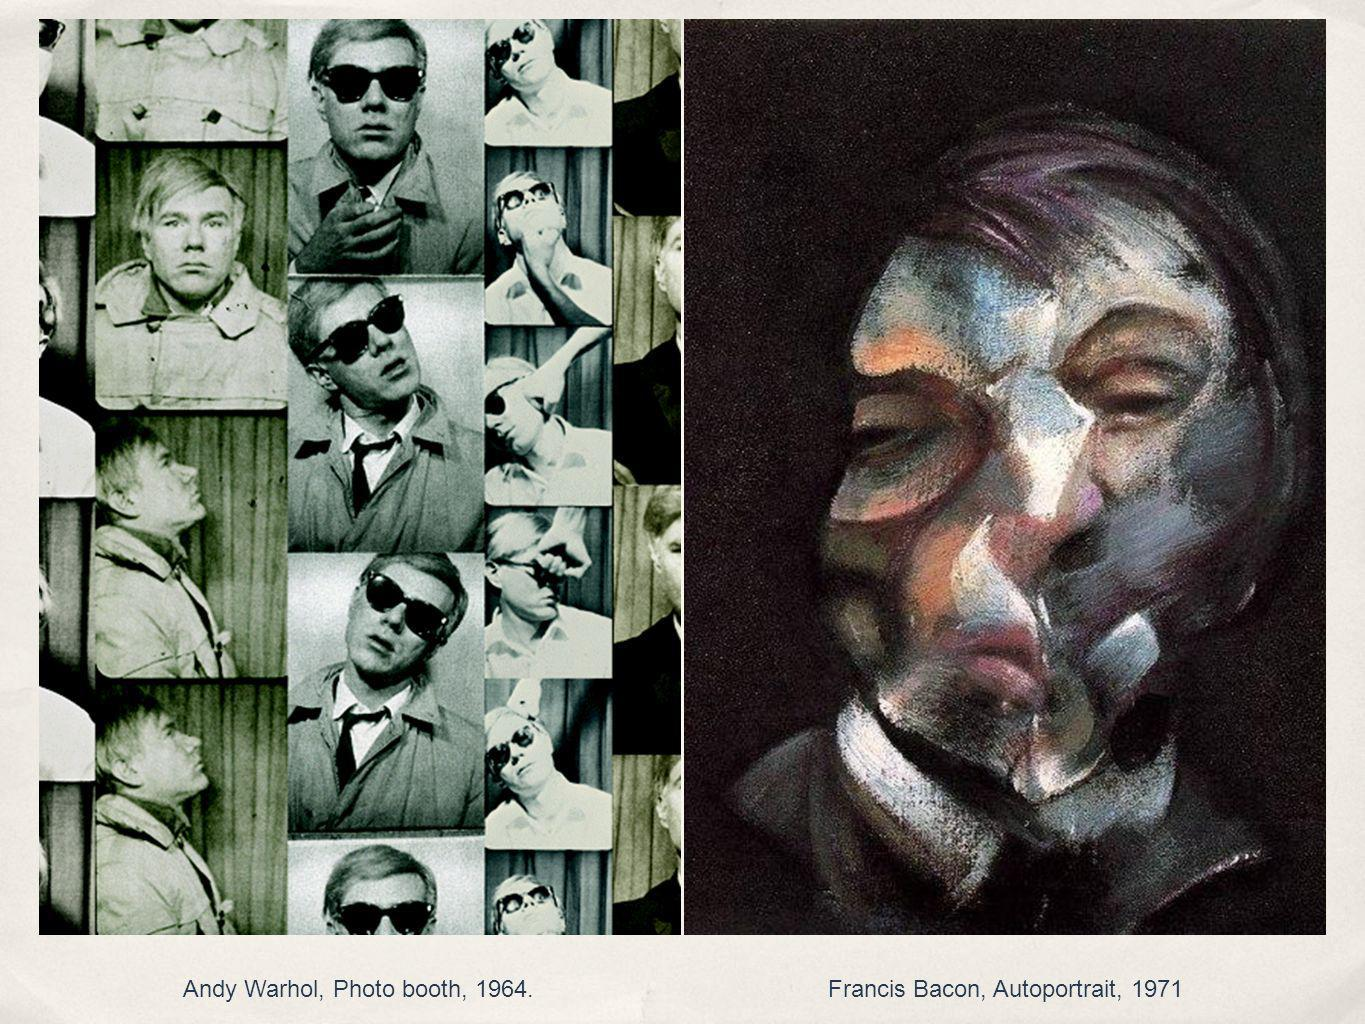 Andy Warhol, Photo booth, 1964. Francis Bacon, Autoportrait, 1971